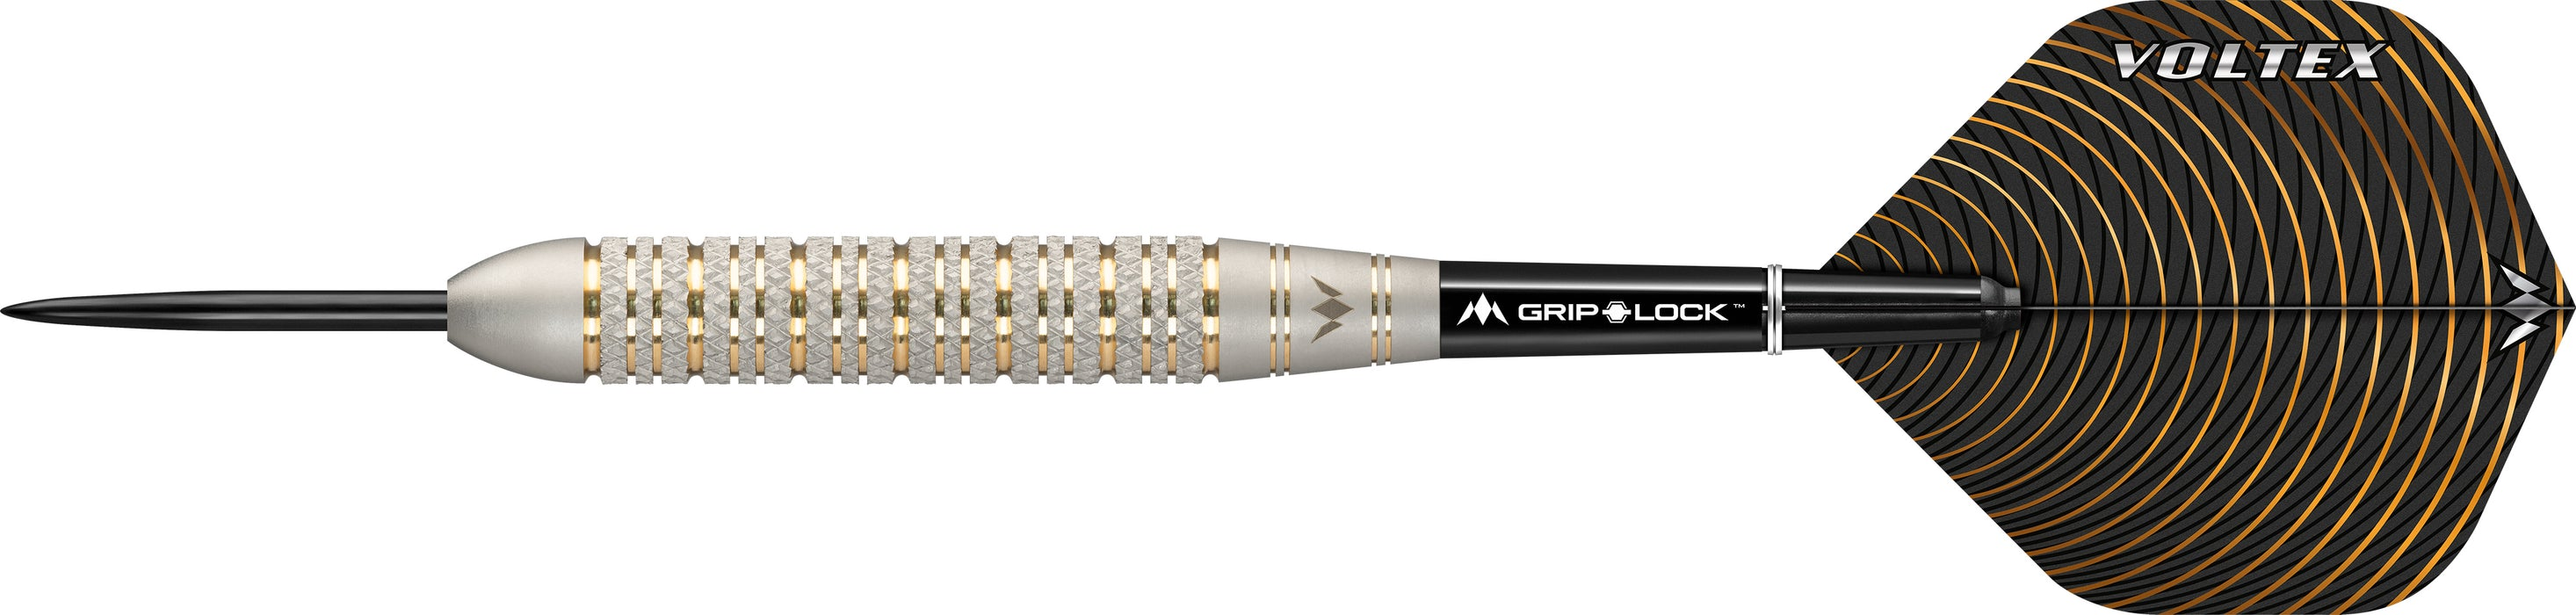 Mission Voltex Darts - Steel Tip Brass - Electro - M2 - Silver - Knurled - 23g